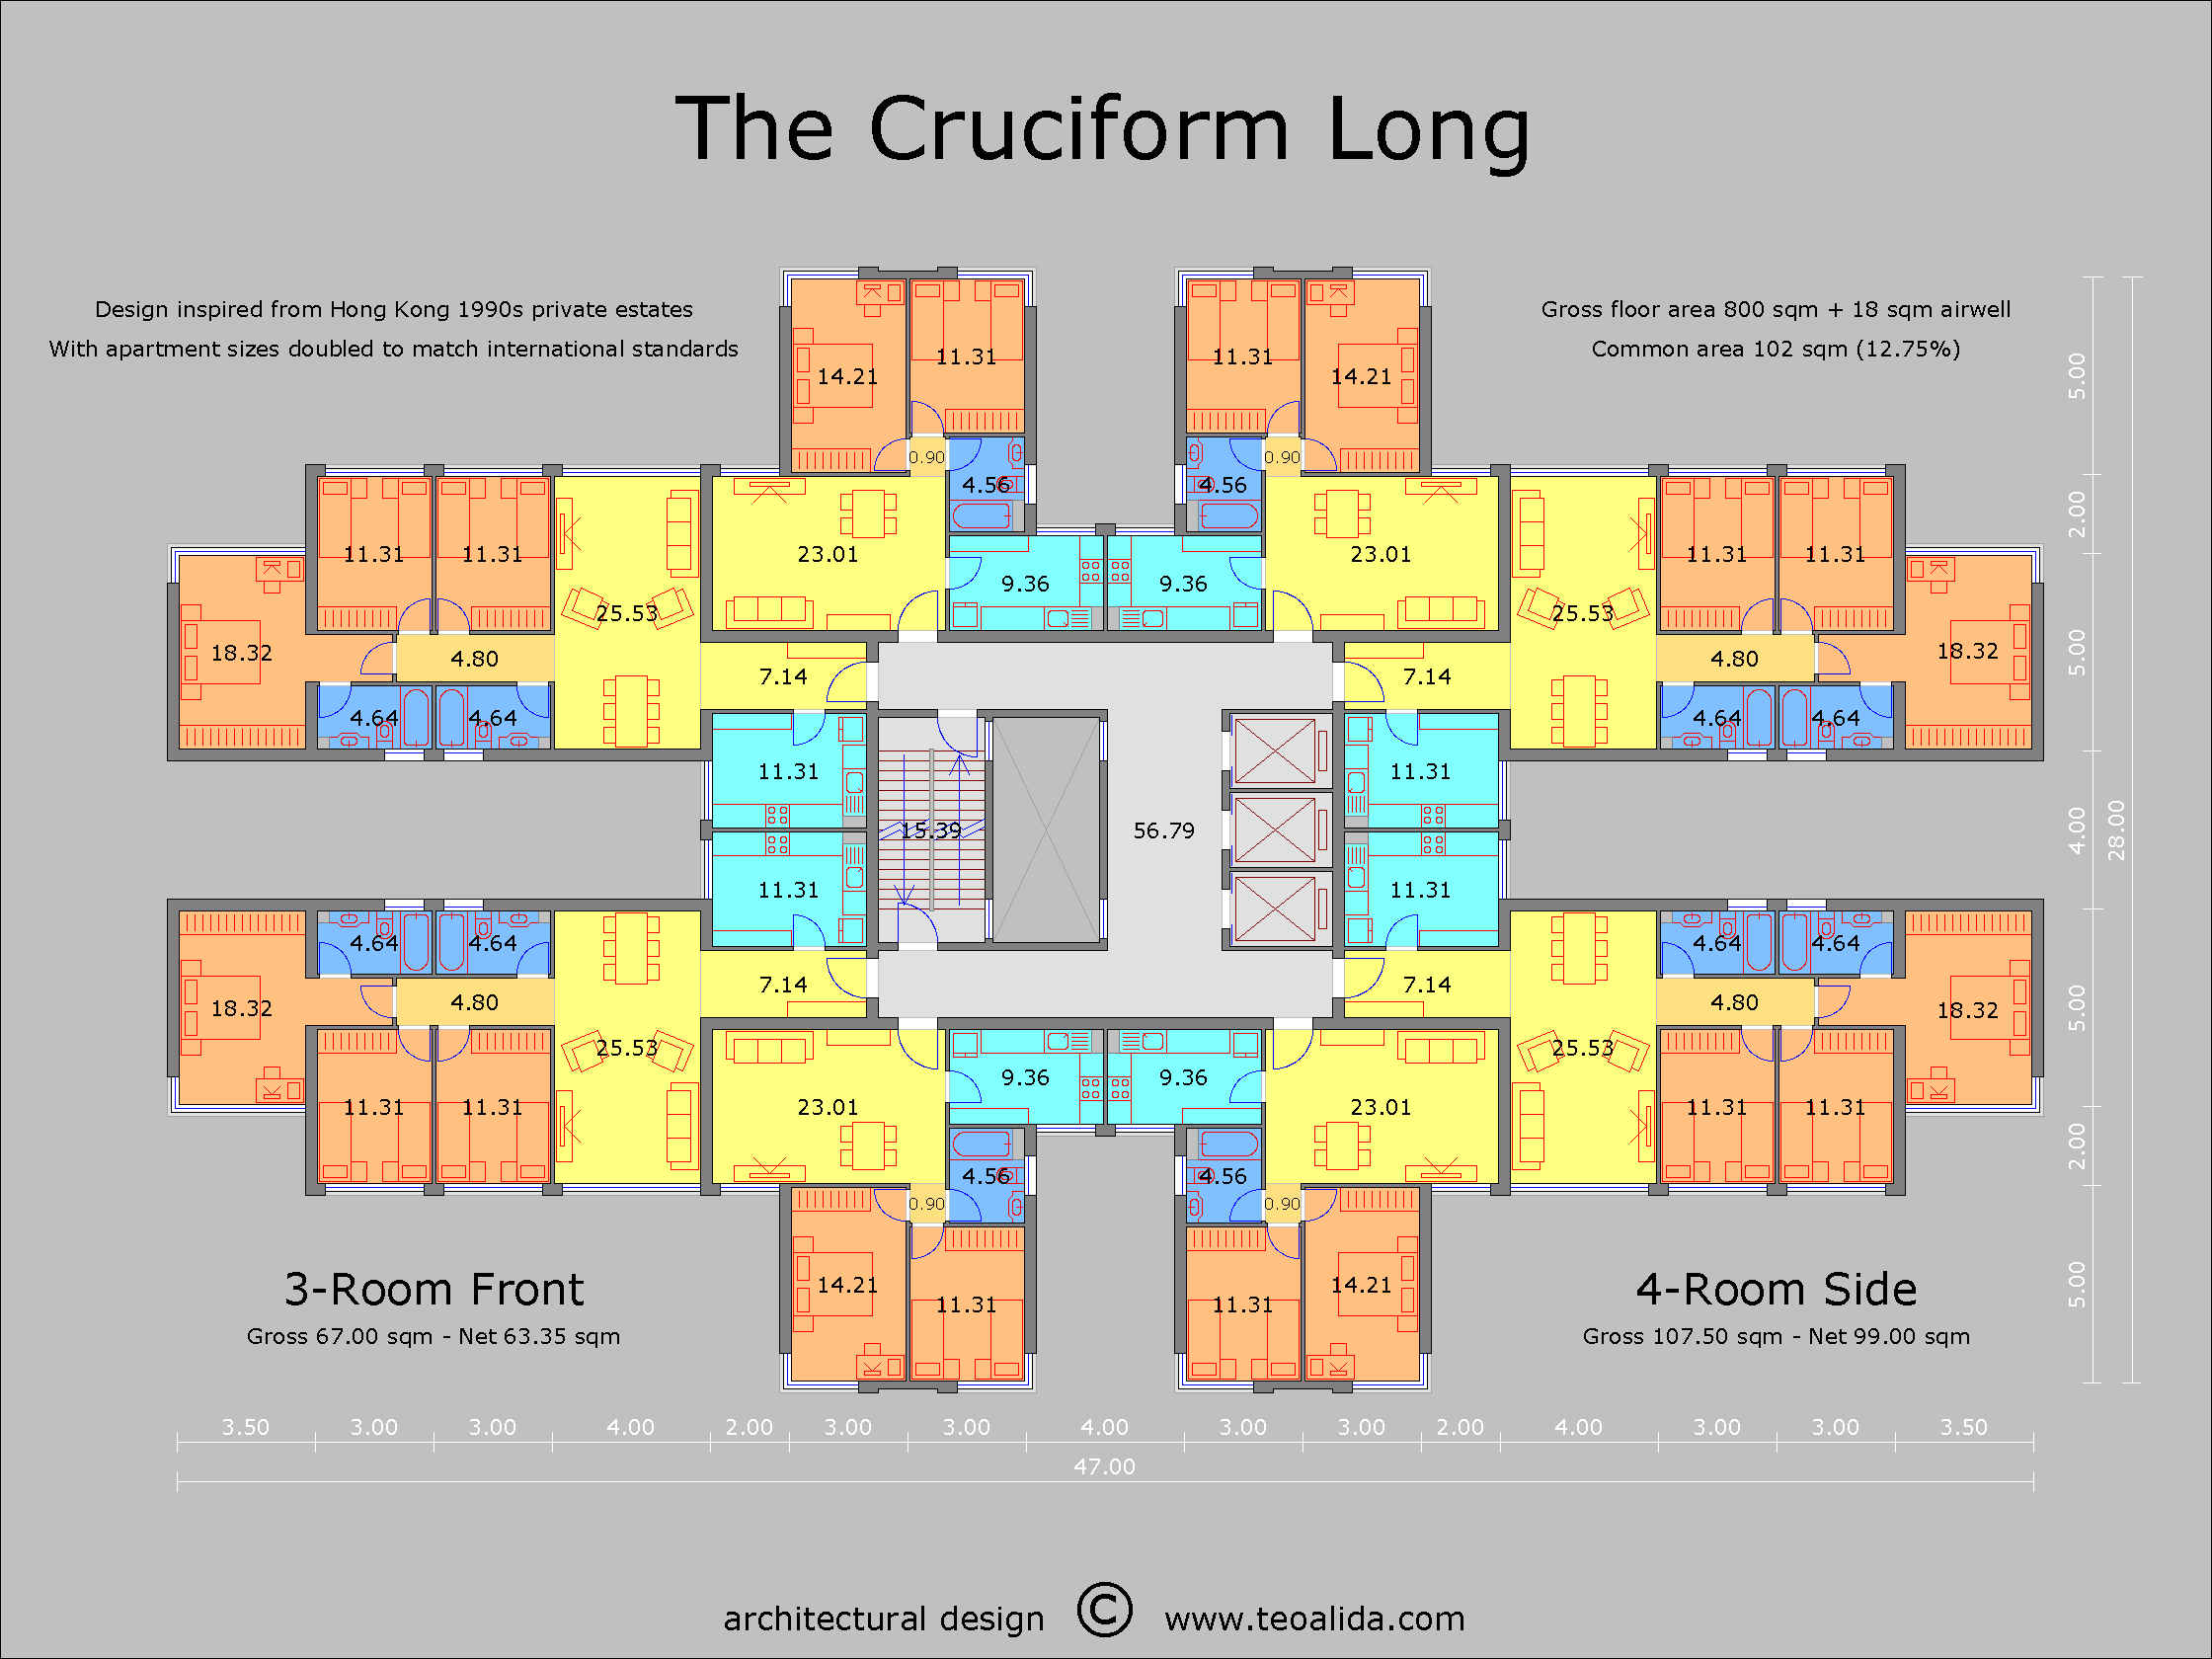 The Cruciform floor plan